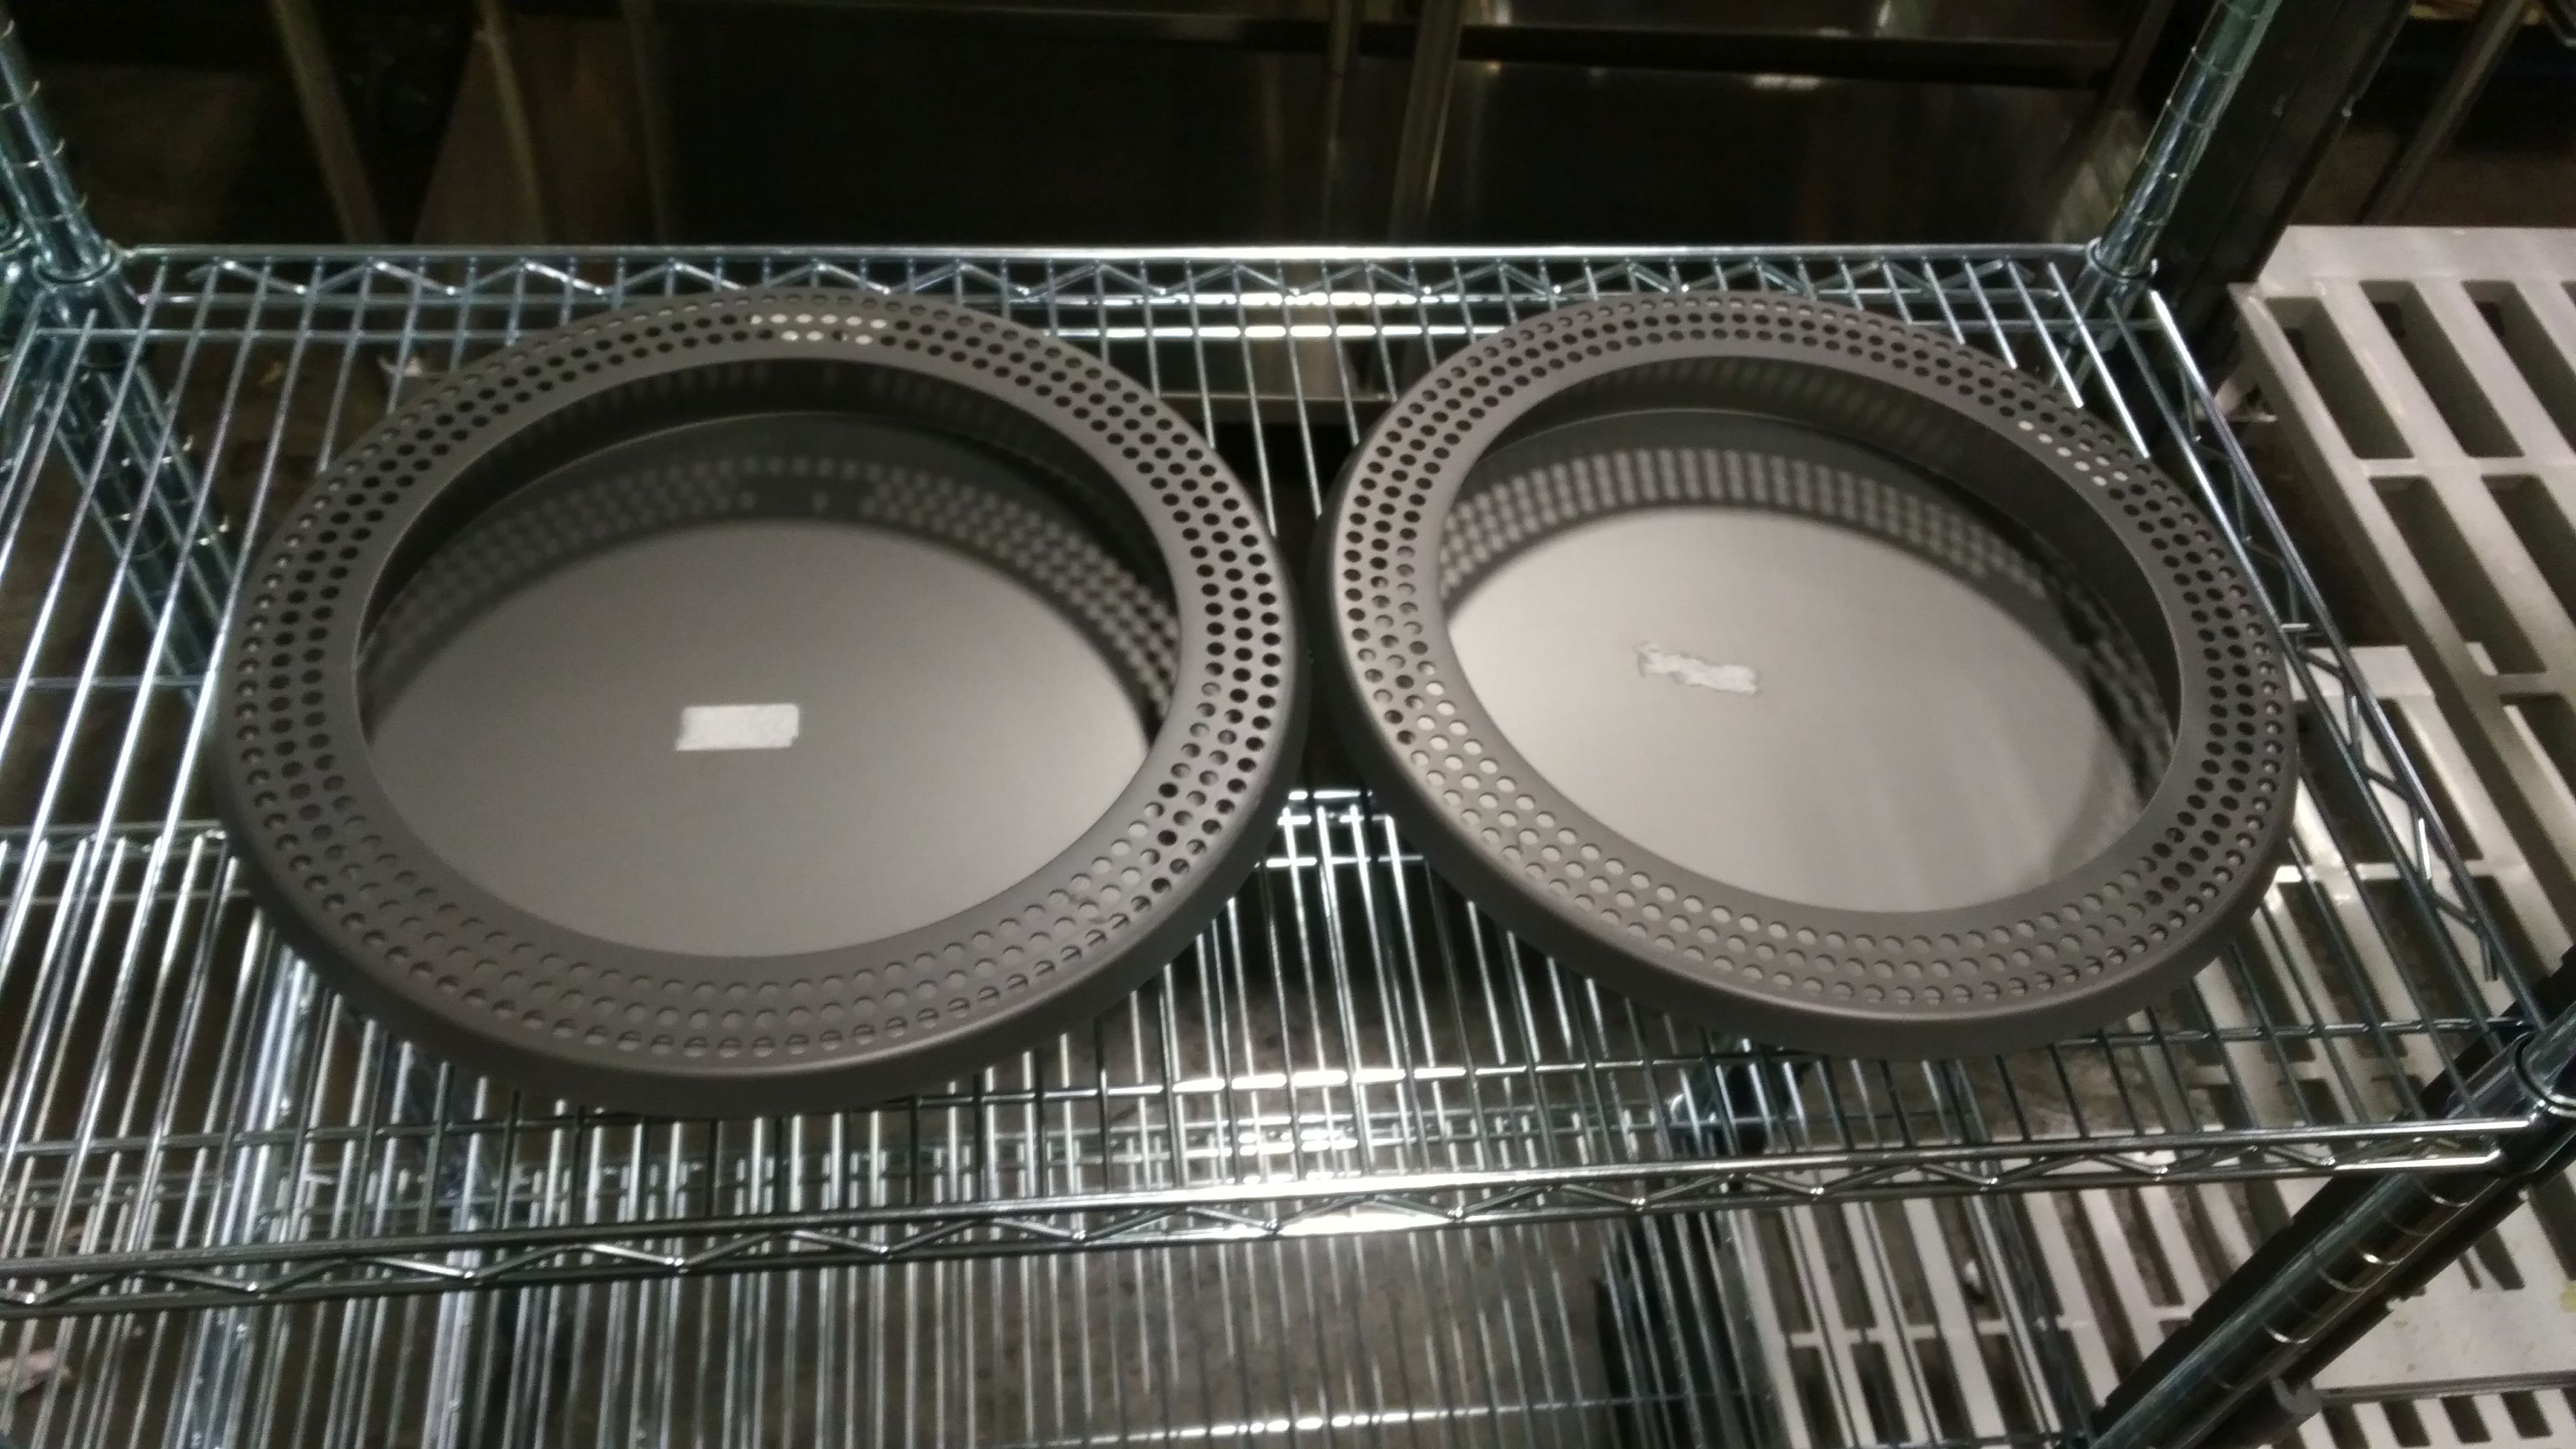 """Lot 1 - 13"""" Pizza Pans with No-Burn Ring - Lot of 2 (4 Pieces)"""